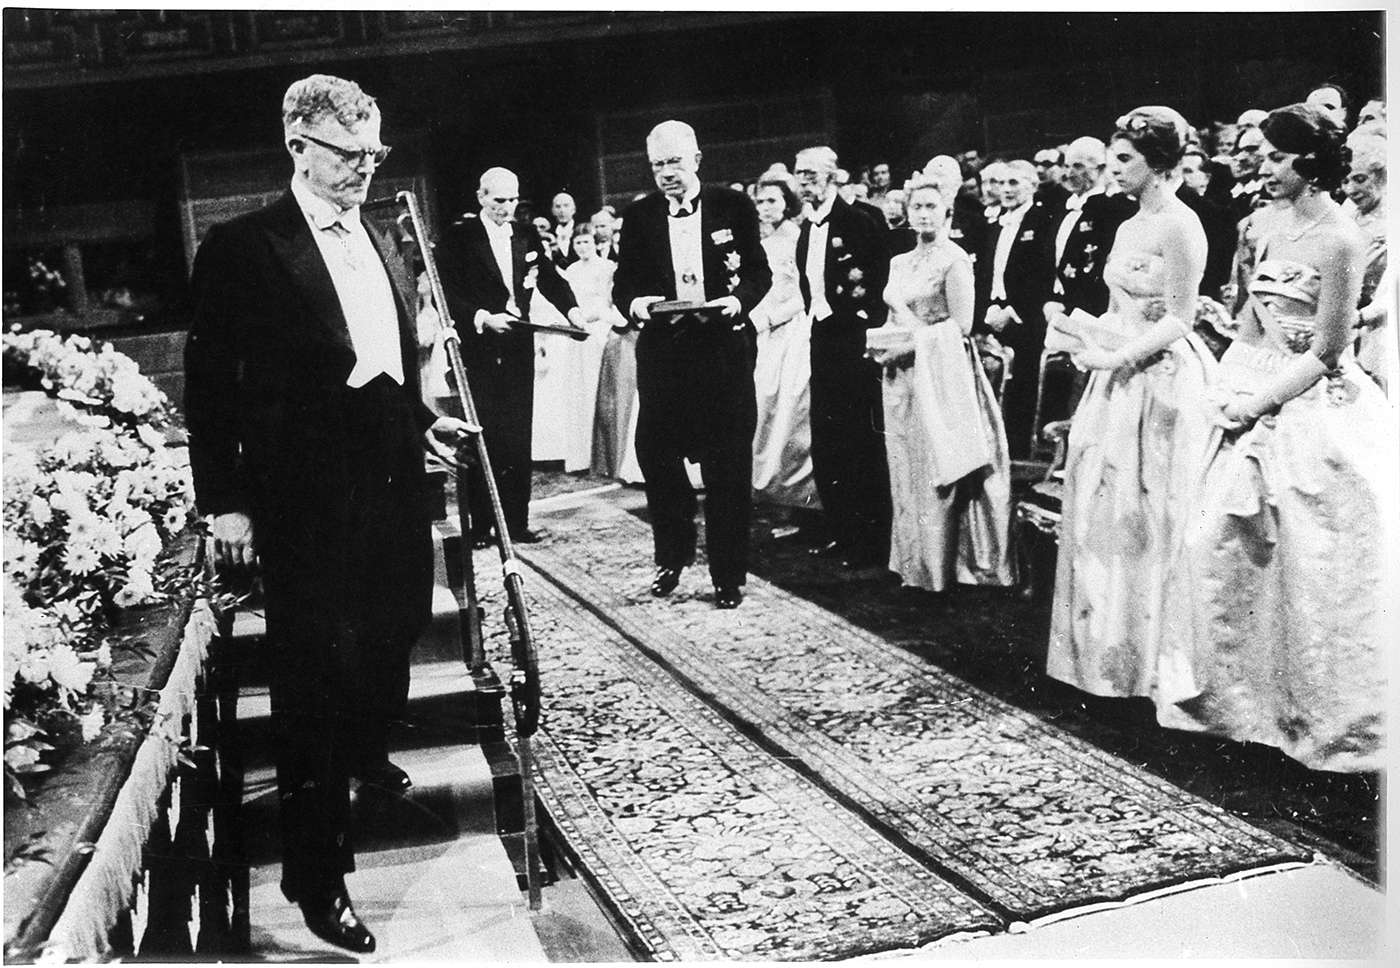 Black and white photograph of Burnet stepping down from a podium at the Nobel Prize award presentation ceremony.